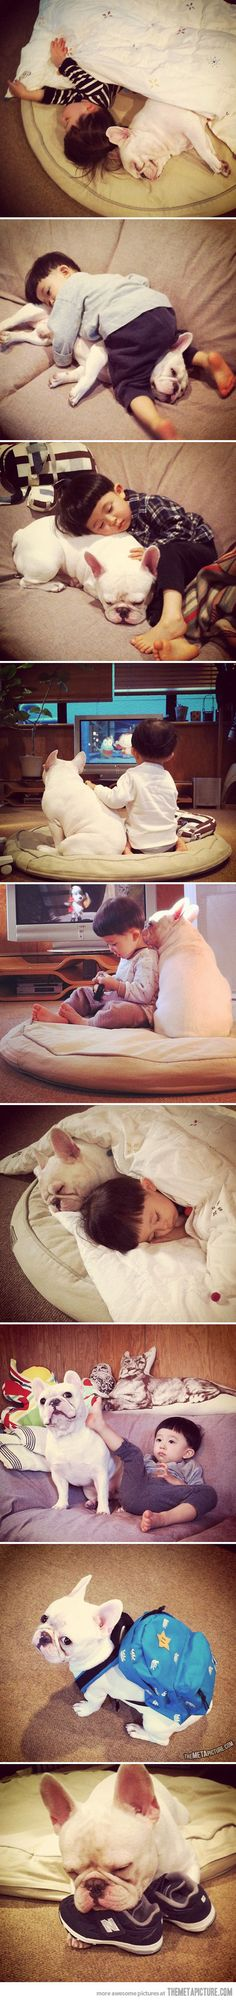 cest exactement ca reason why Frenchies are the best dogs ♥ / Bouledogue français / French bulldog Dogs And Kids, I Love Dogs, Puppy Love, Baby Animals, Funny Animals, Cute Animals, Tier Fotos, Dog Friends, Funny Cute